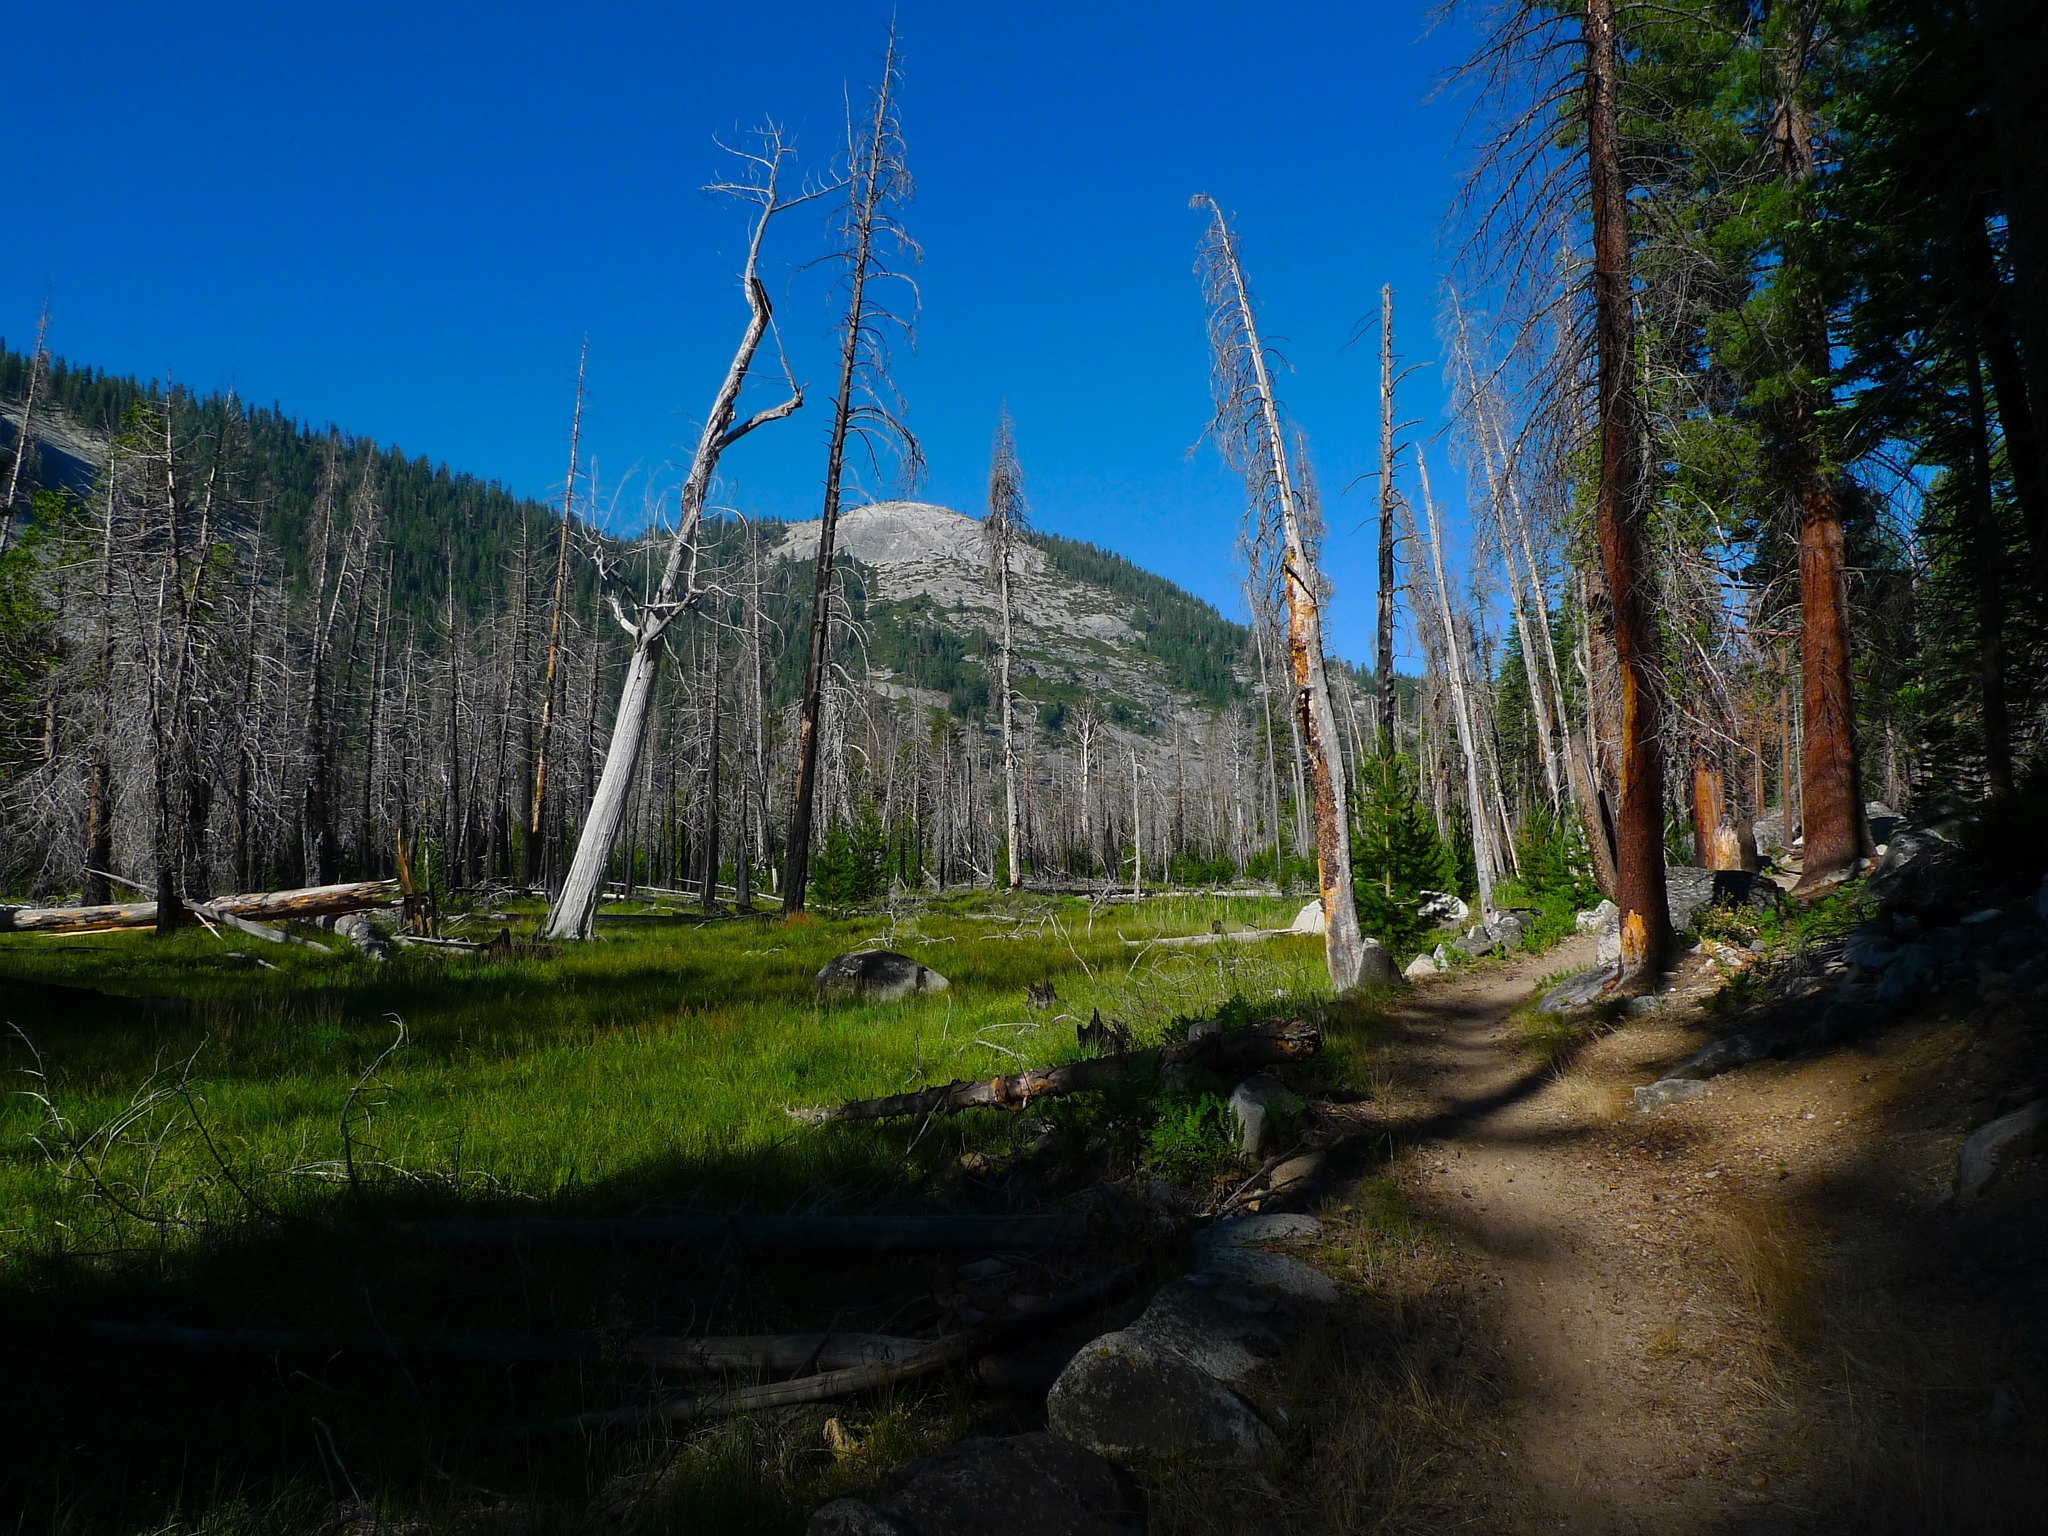 Much of Little Yosemite Valley is dumpy, dead, burned, and generally uninteresting.